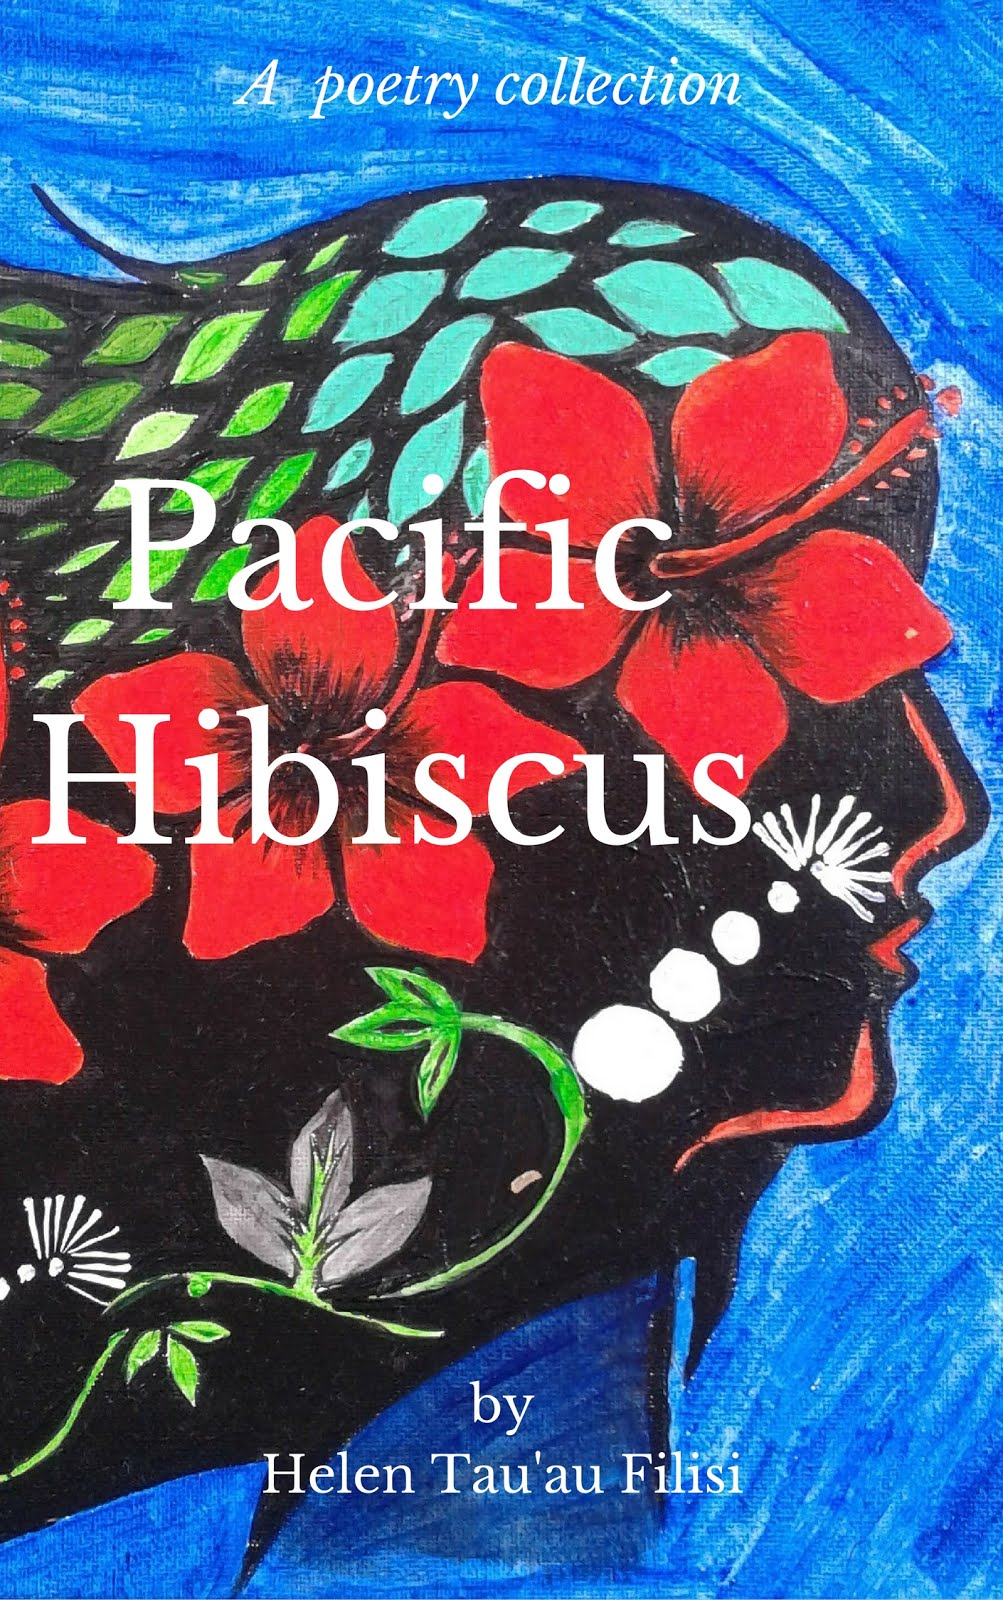 Pacific Hibiscus (1st Poetry collection)